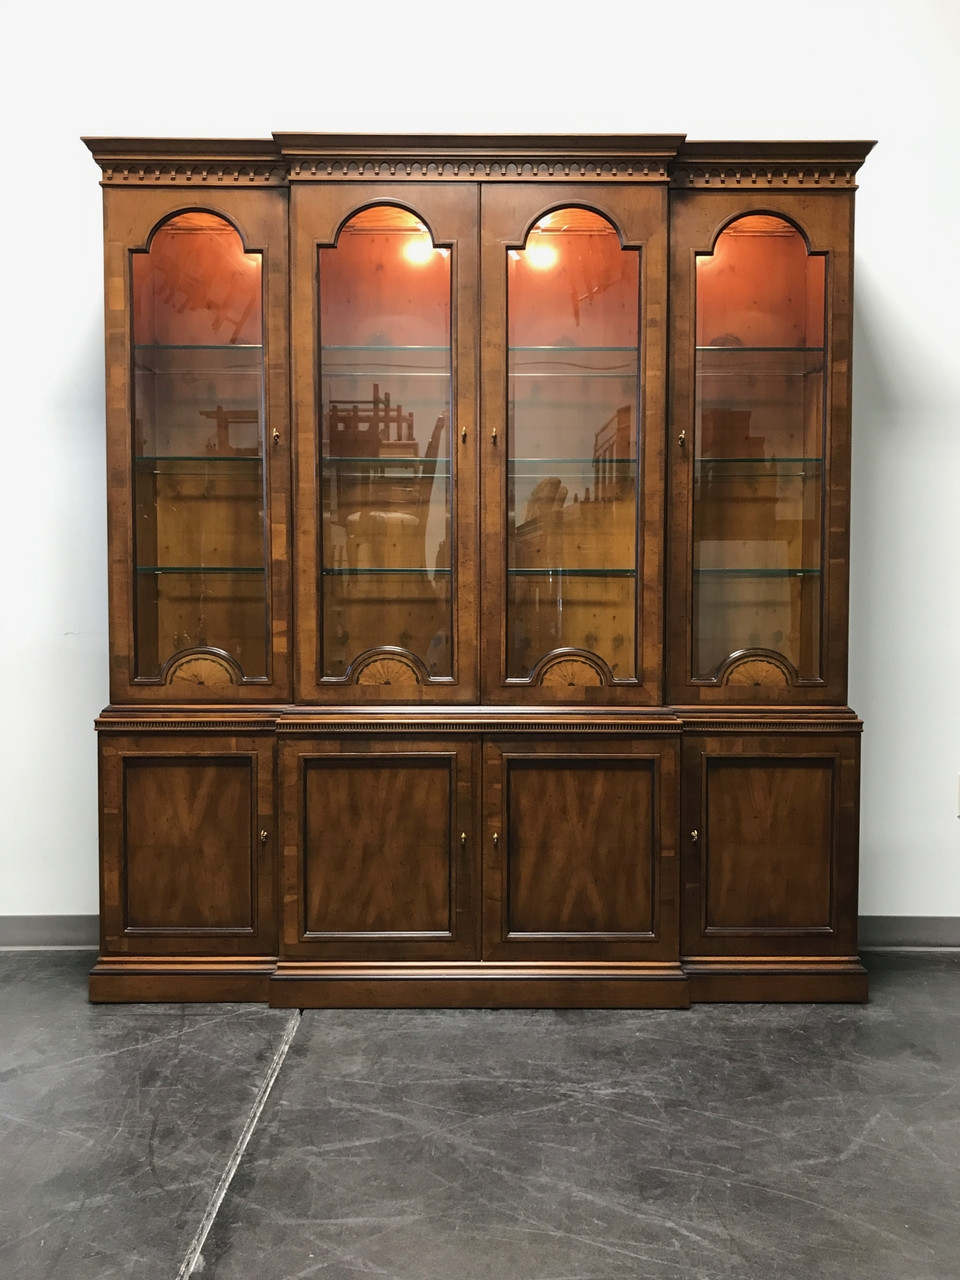 HENREDON 18th Century Collection Inlaid Yew Wood Breakfront China Cabinet